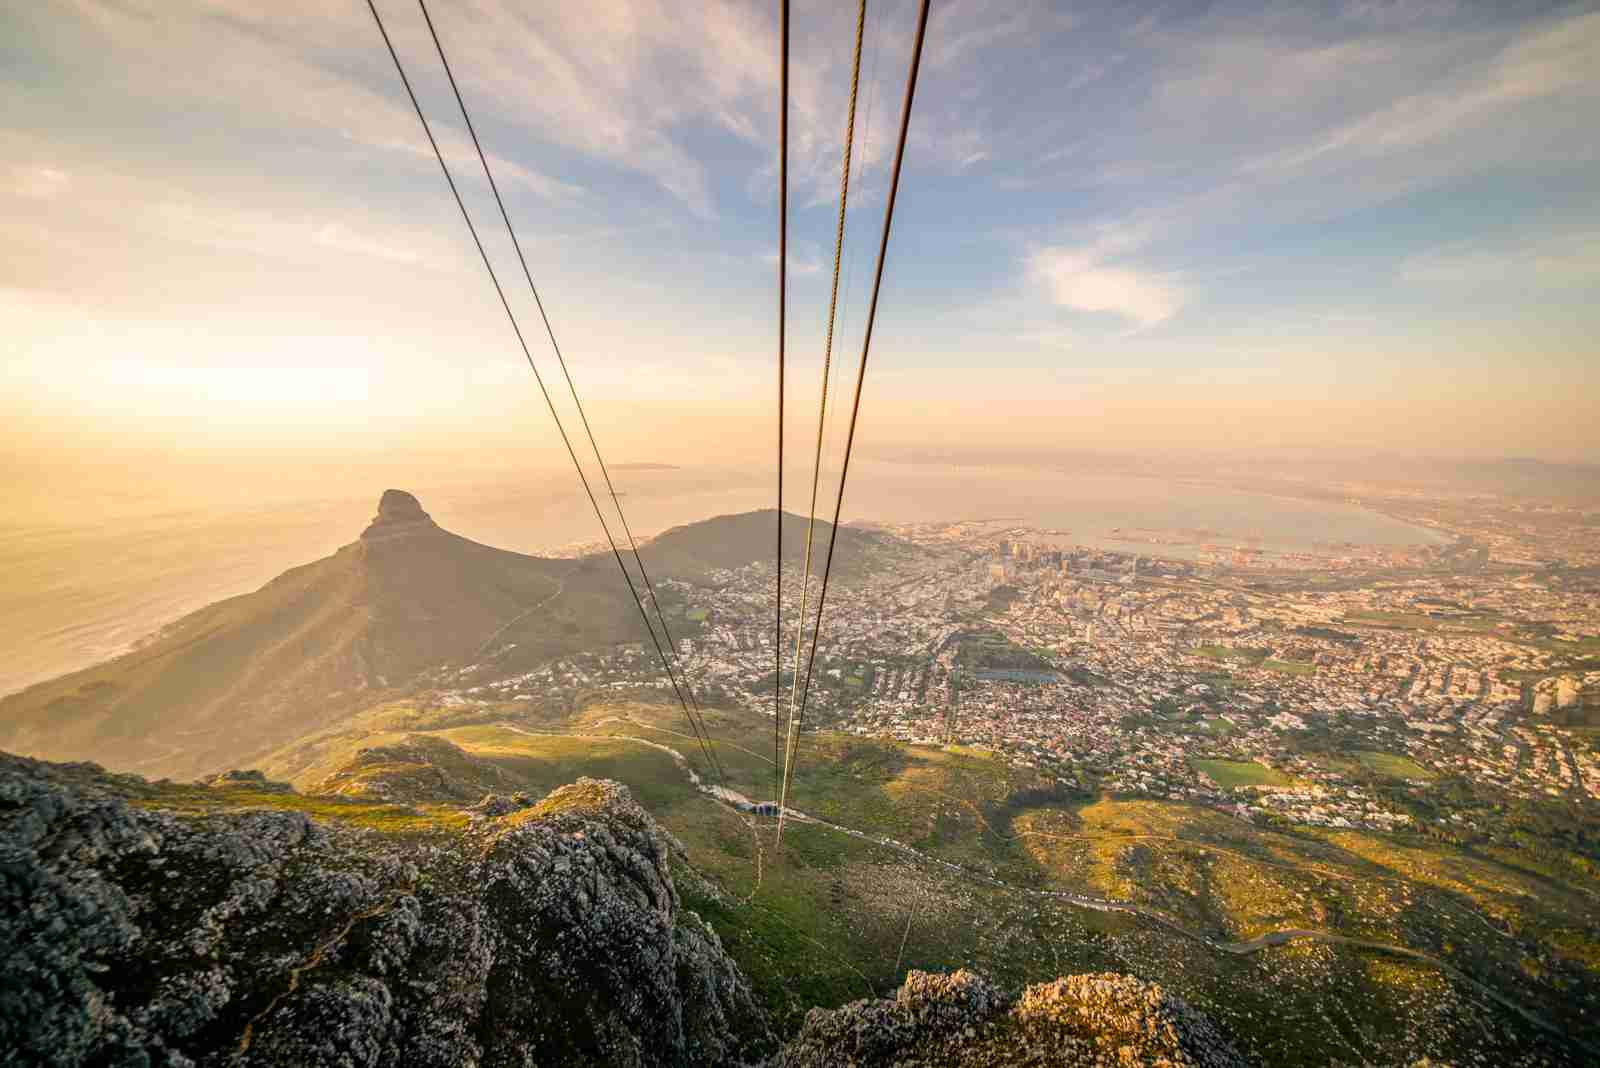 The view from the top of Table Mountain via the Aerial Cableway. (Photo by Chiara Salvadori/Getty Images)